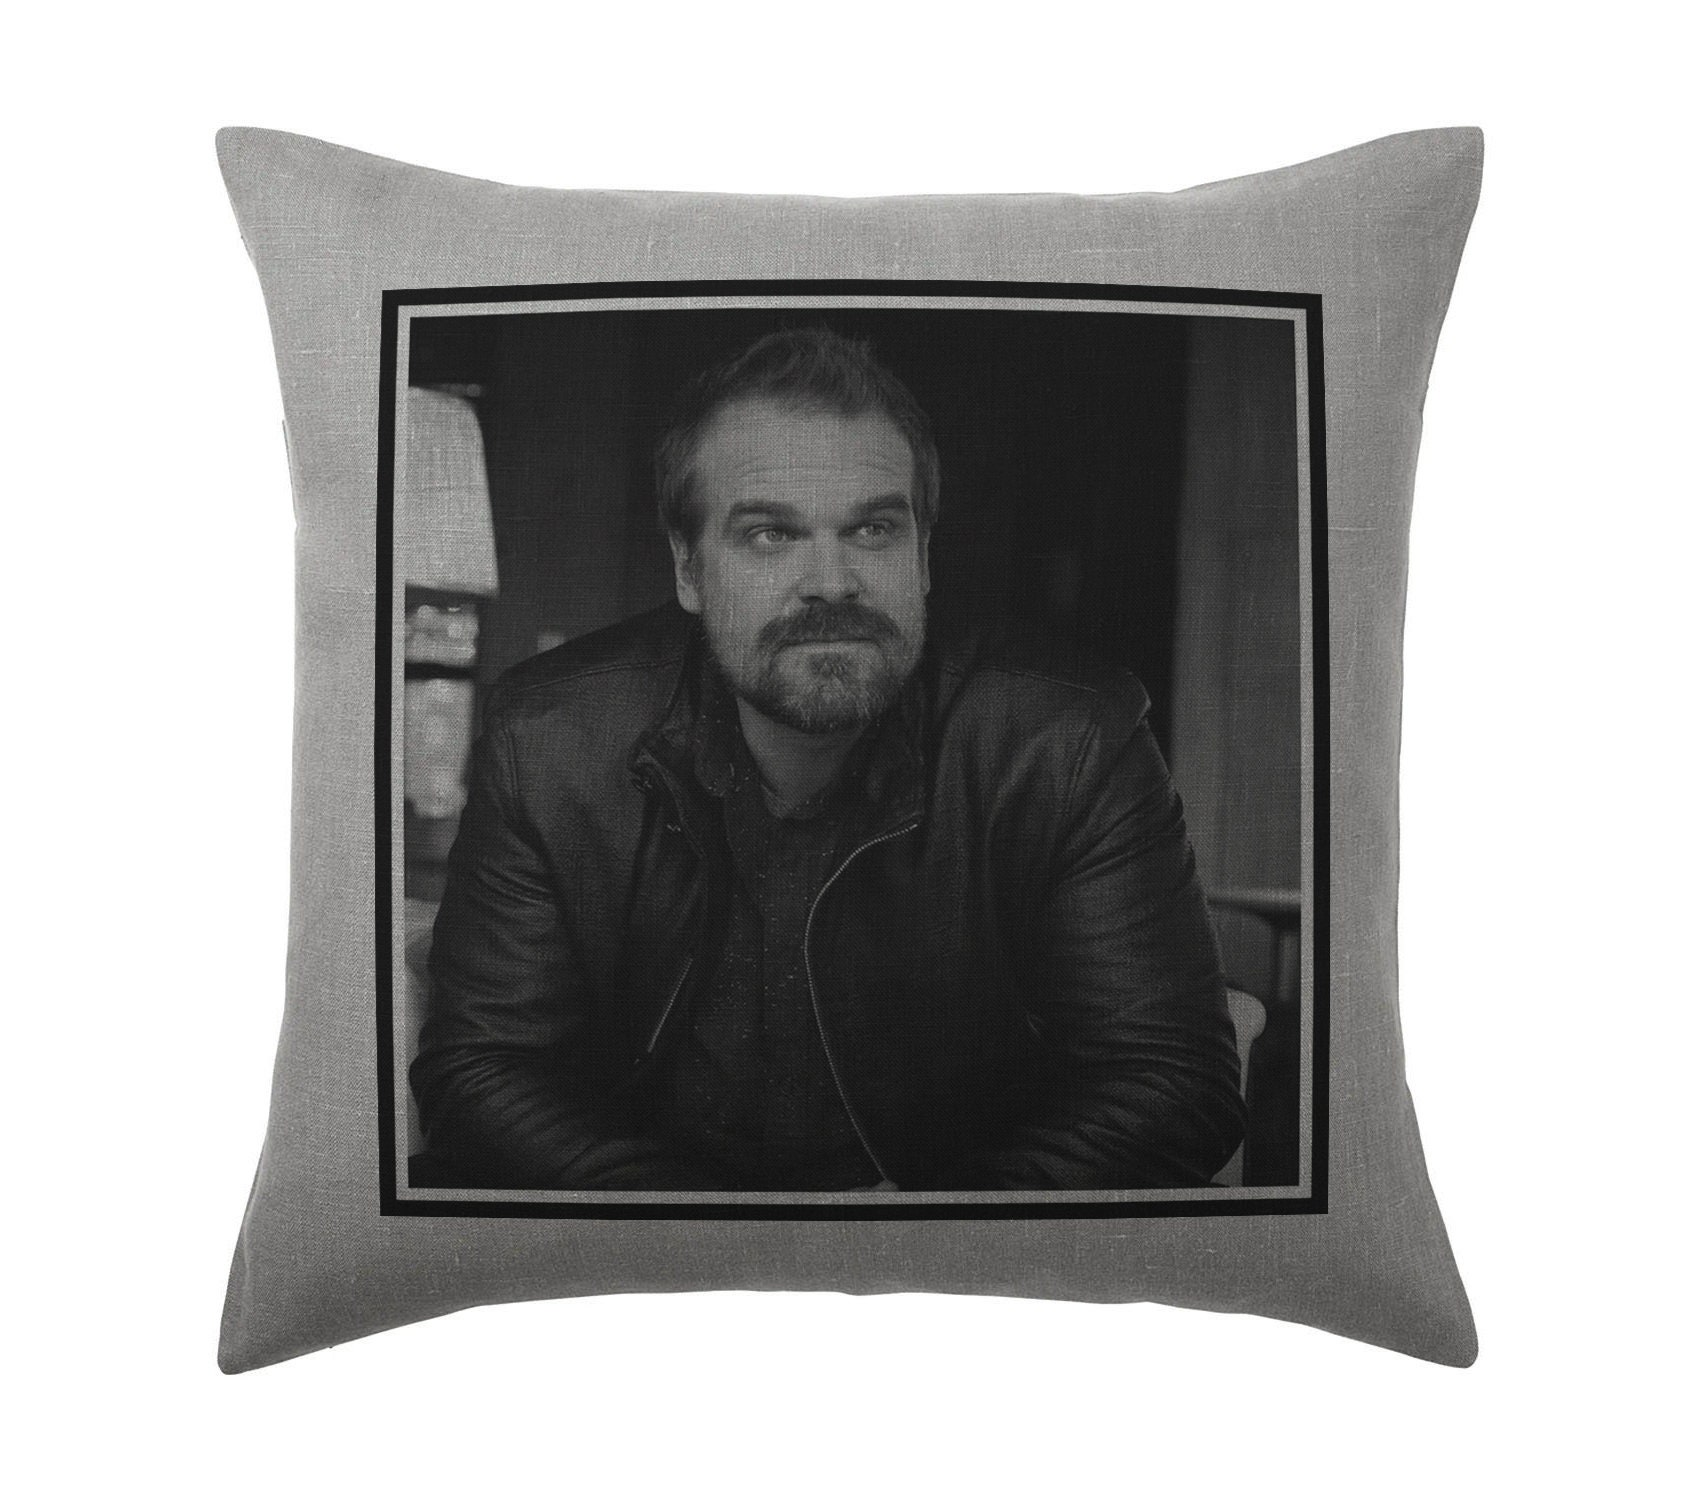 David Harbour Pillow Cushion 16x16in